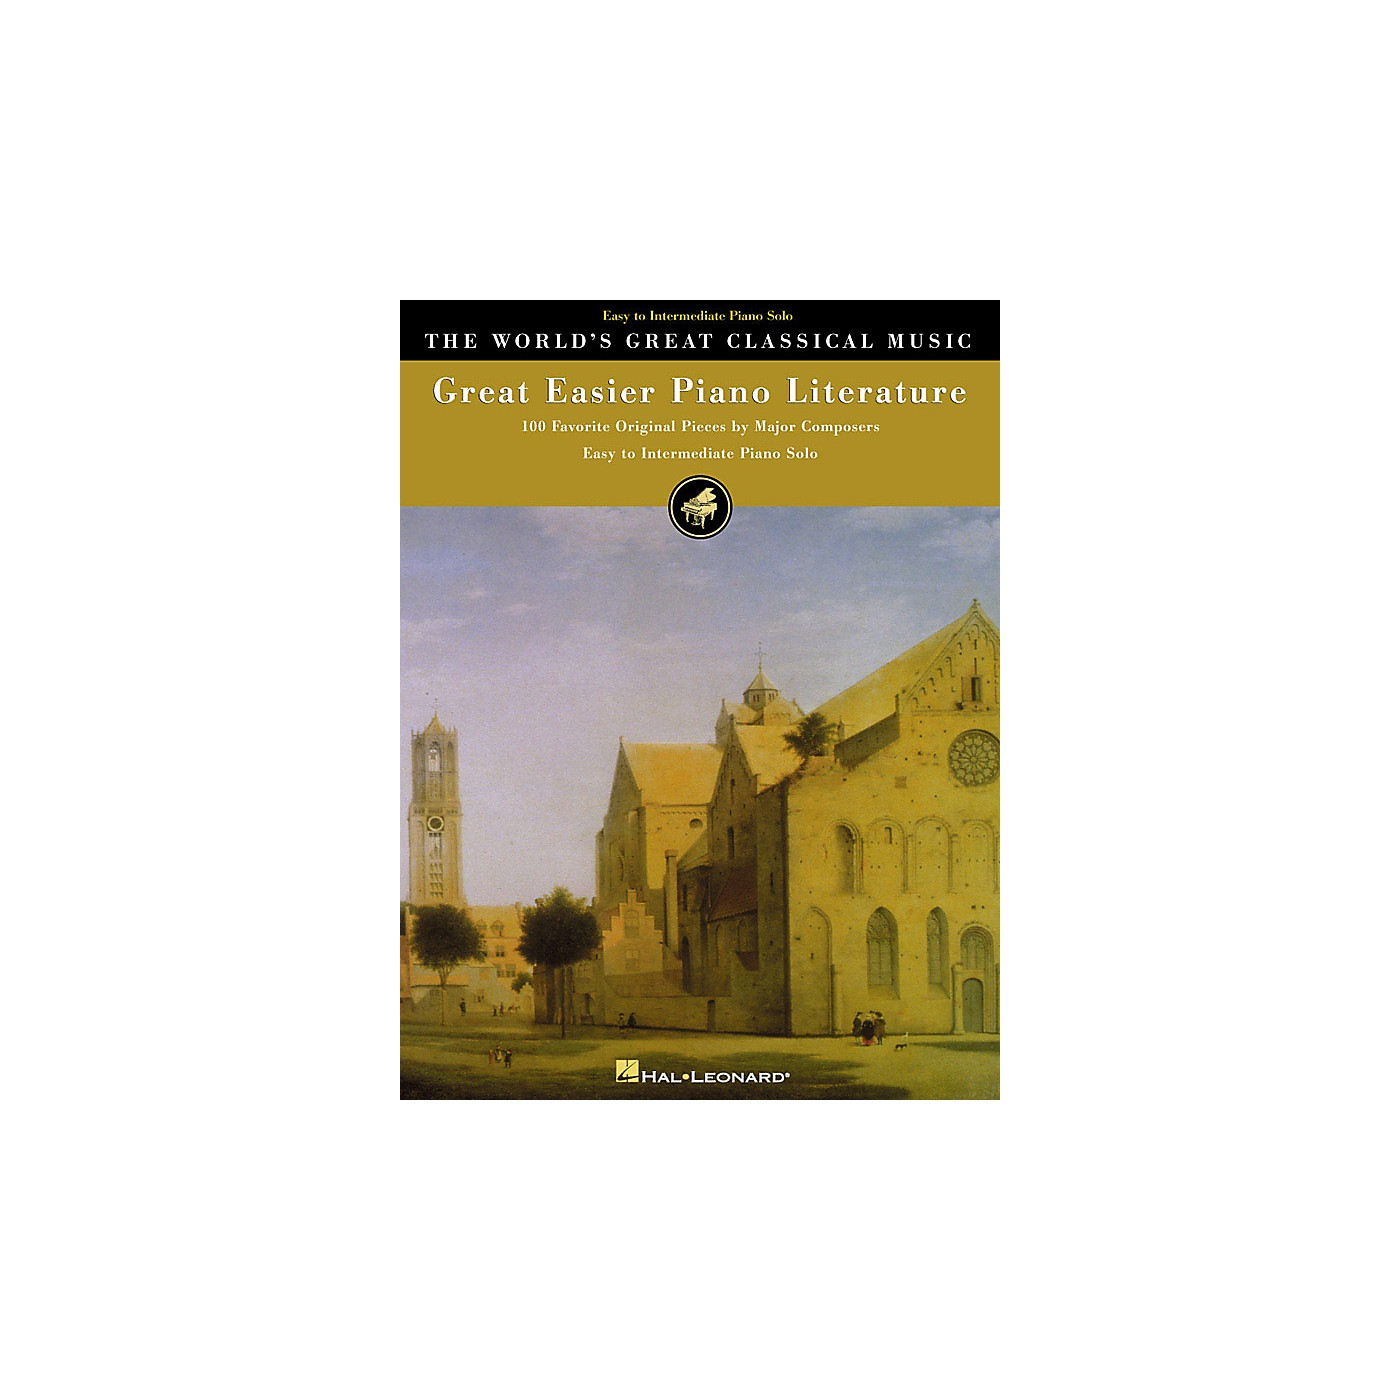 Hal Leonard Great Easier Piano Literature World's Greatest Classical Music Series (Easy) thumbnail